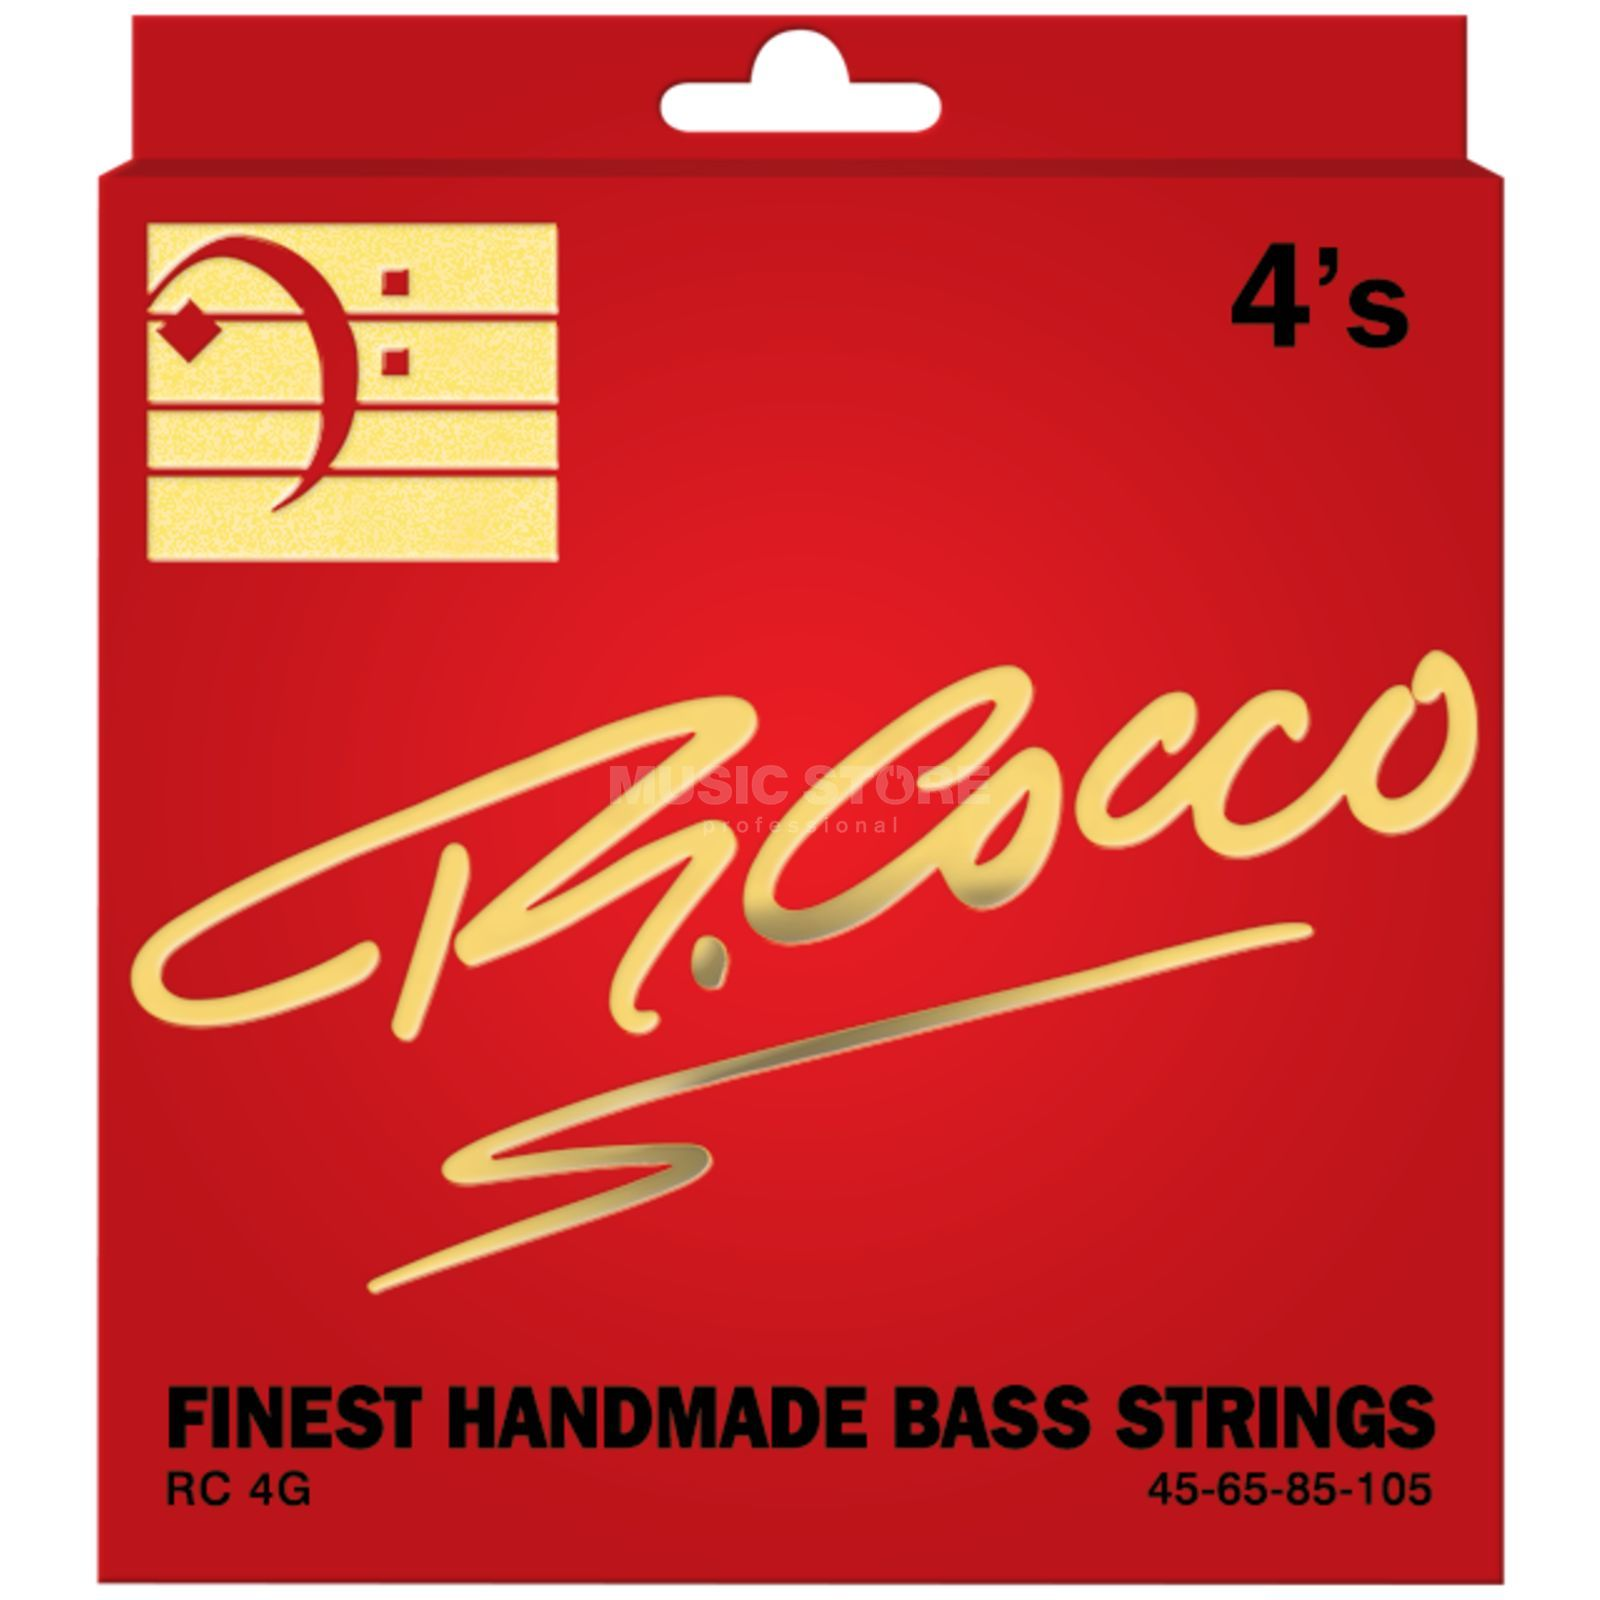 Cocco RC4G Bass Strings 45-105 4 Set, 45-65-85-105  Classic Wound Product Image